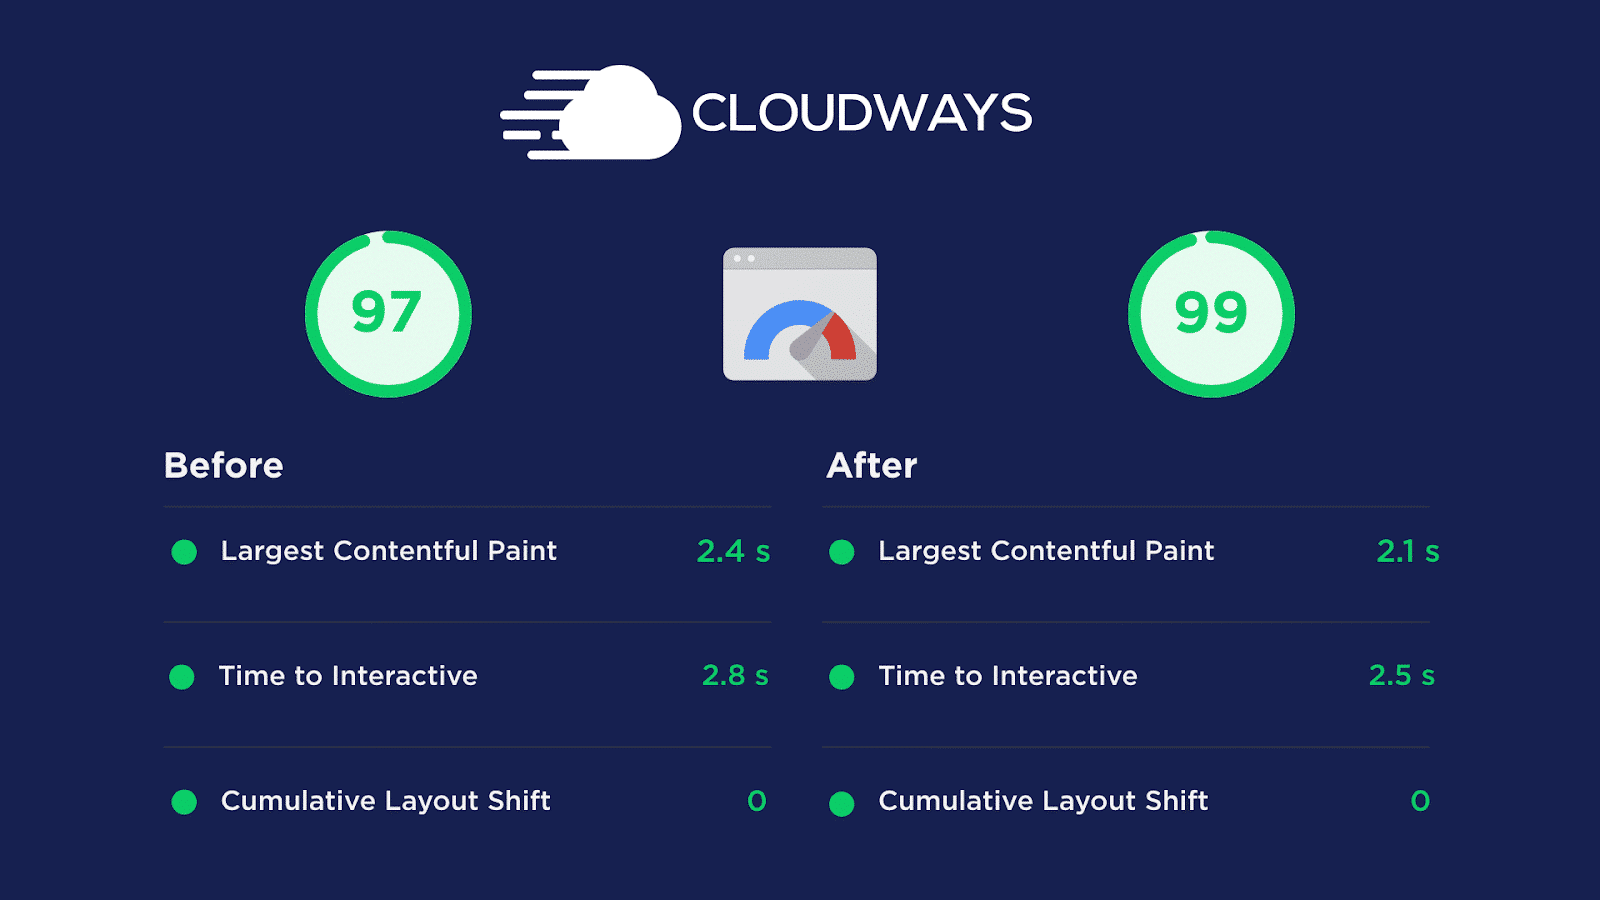 Cloudways PageSpeed Insight score